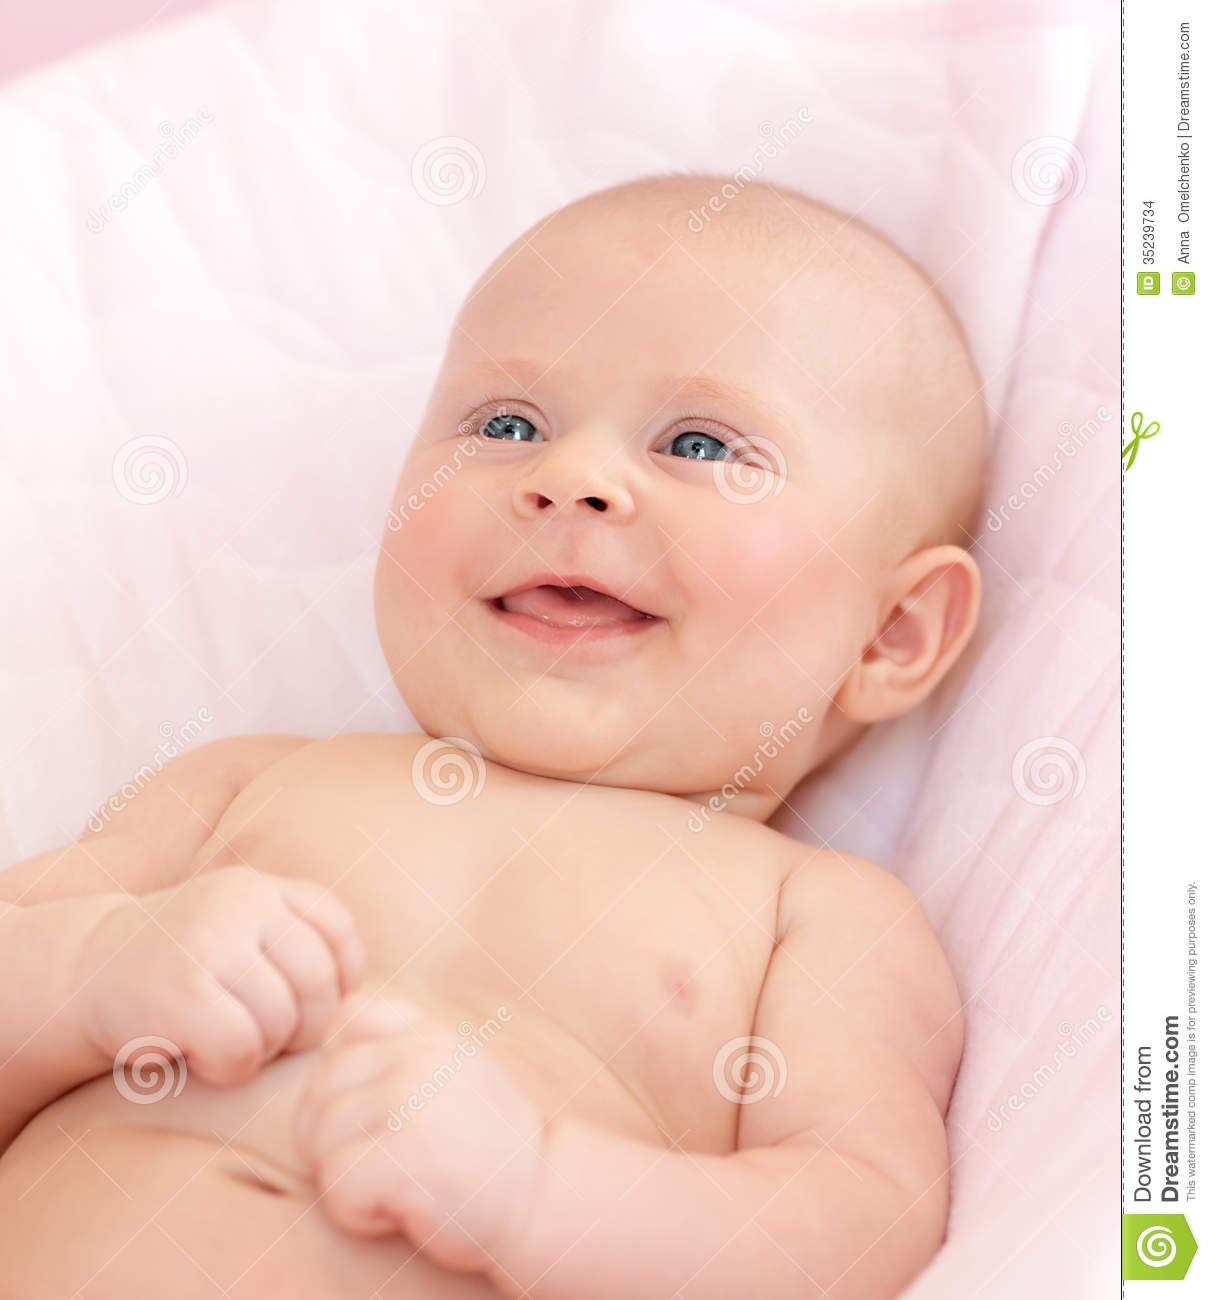 Closeup portrait of cute newborn baby lying down in the bed at home smiling face happy childhood health care new life concept